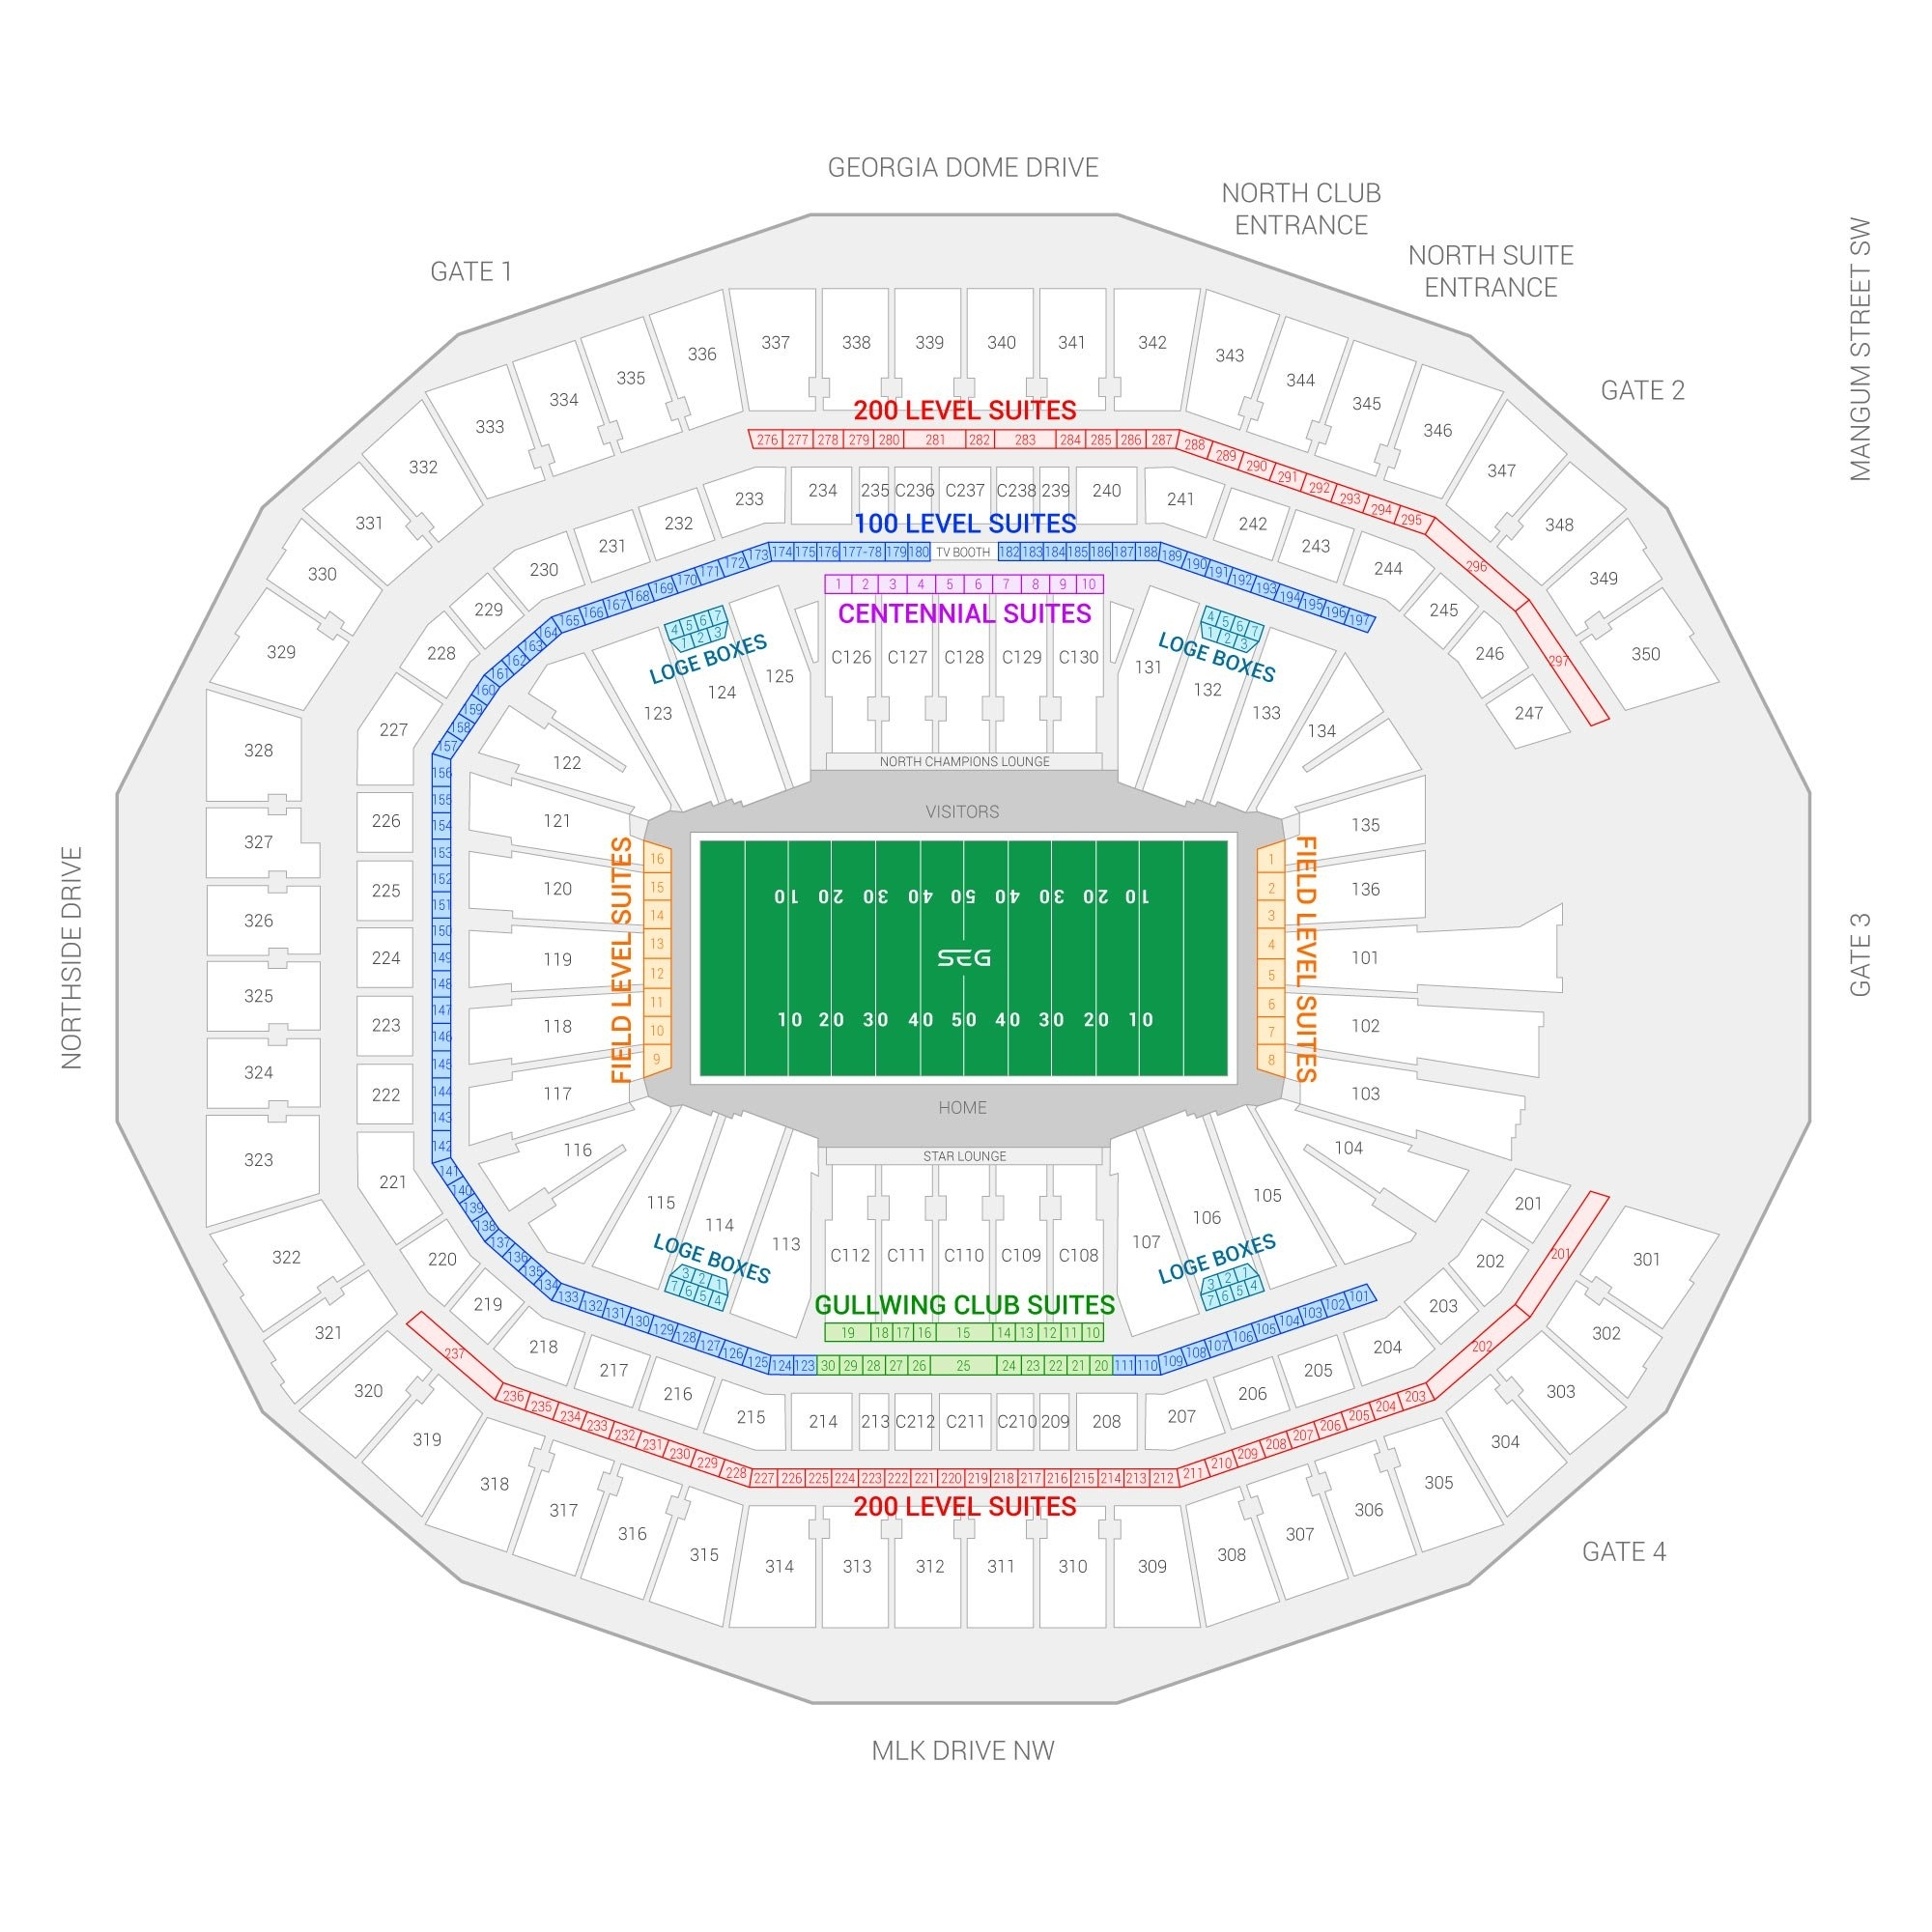 Super Bowl Liii Suite Rentals | Mercedes-Benz Stadium pertaining to Seating Chart For Super Bowl